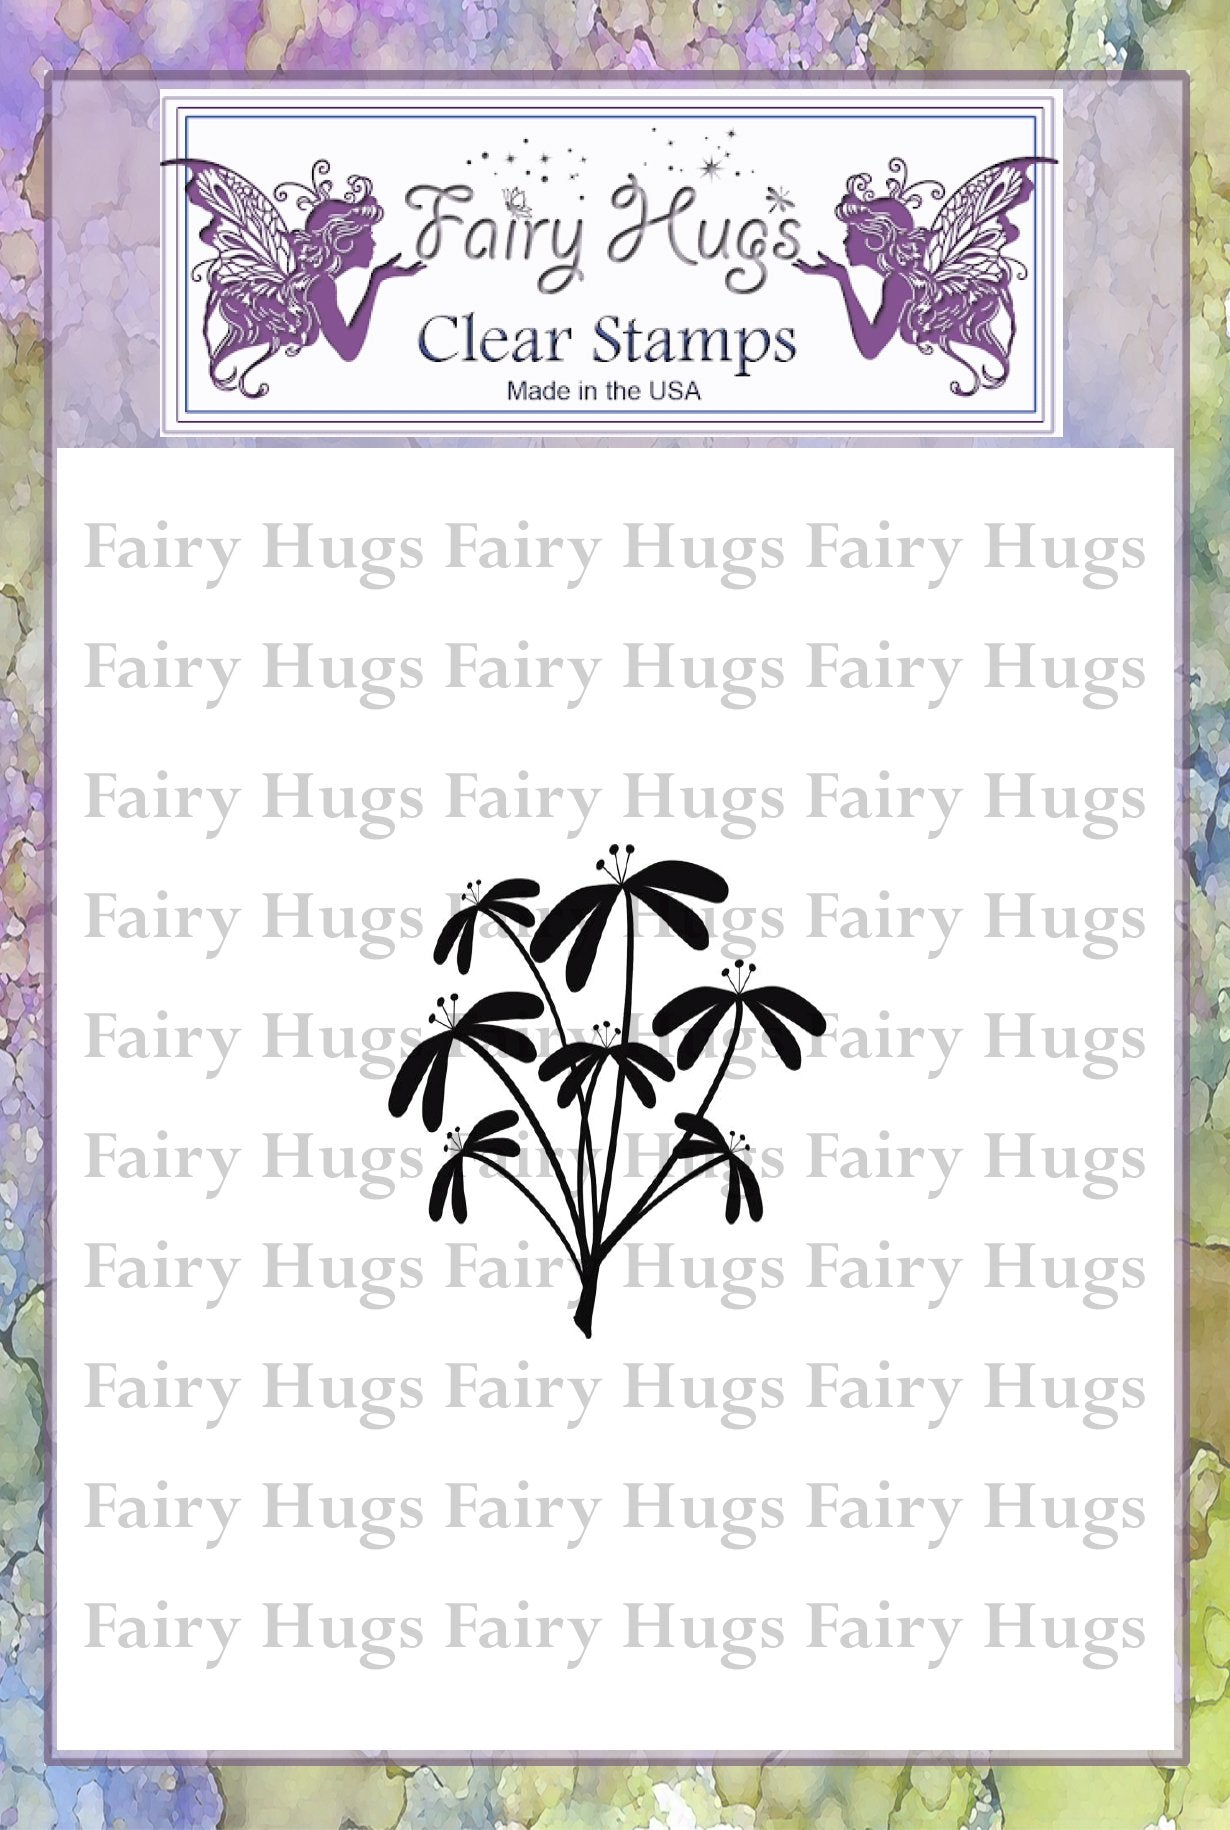 Fairy Hugs Stamps - Whimsical Flower Cluster